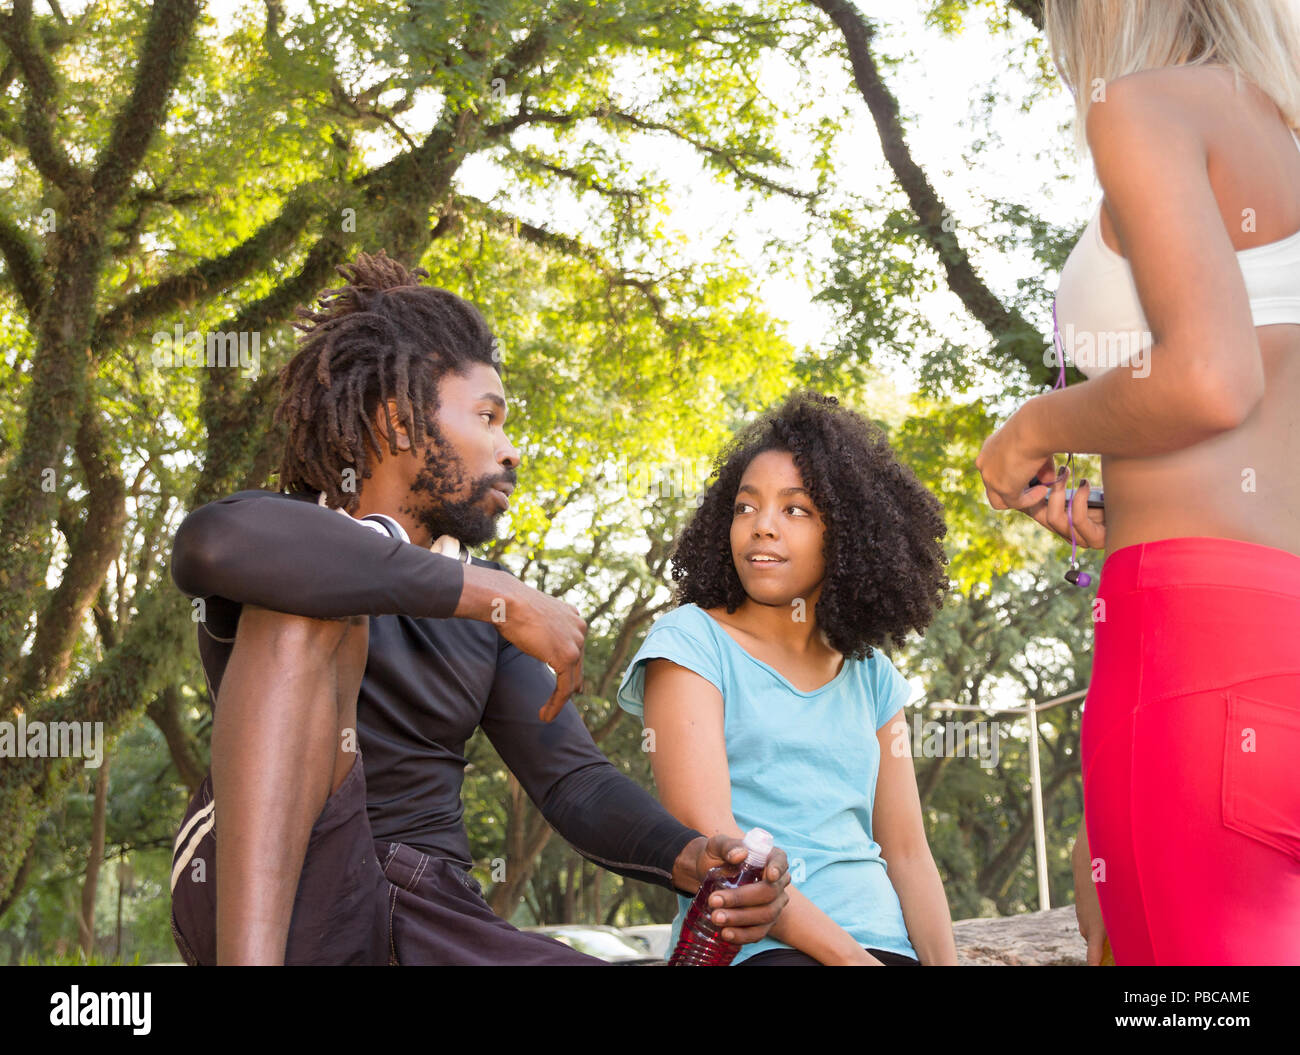 Group of athletes sitting on a tree and talking. Candid and unposed. Friends enjoying outdoors in woodland. Healthy lifestyle and sport concept. - Stock Image